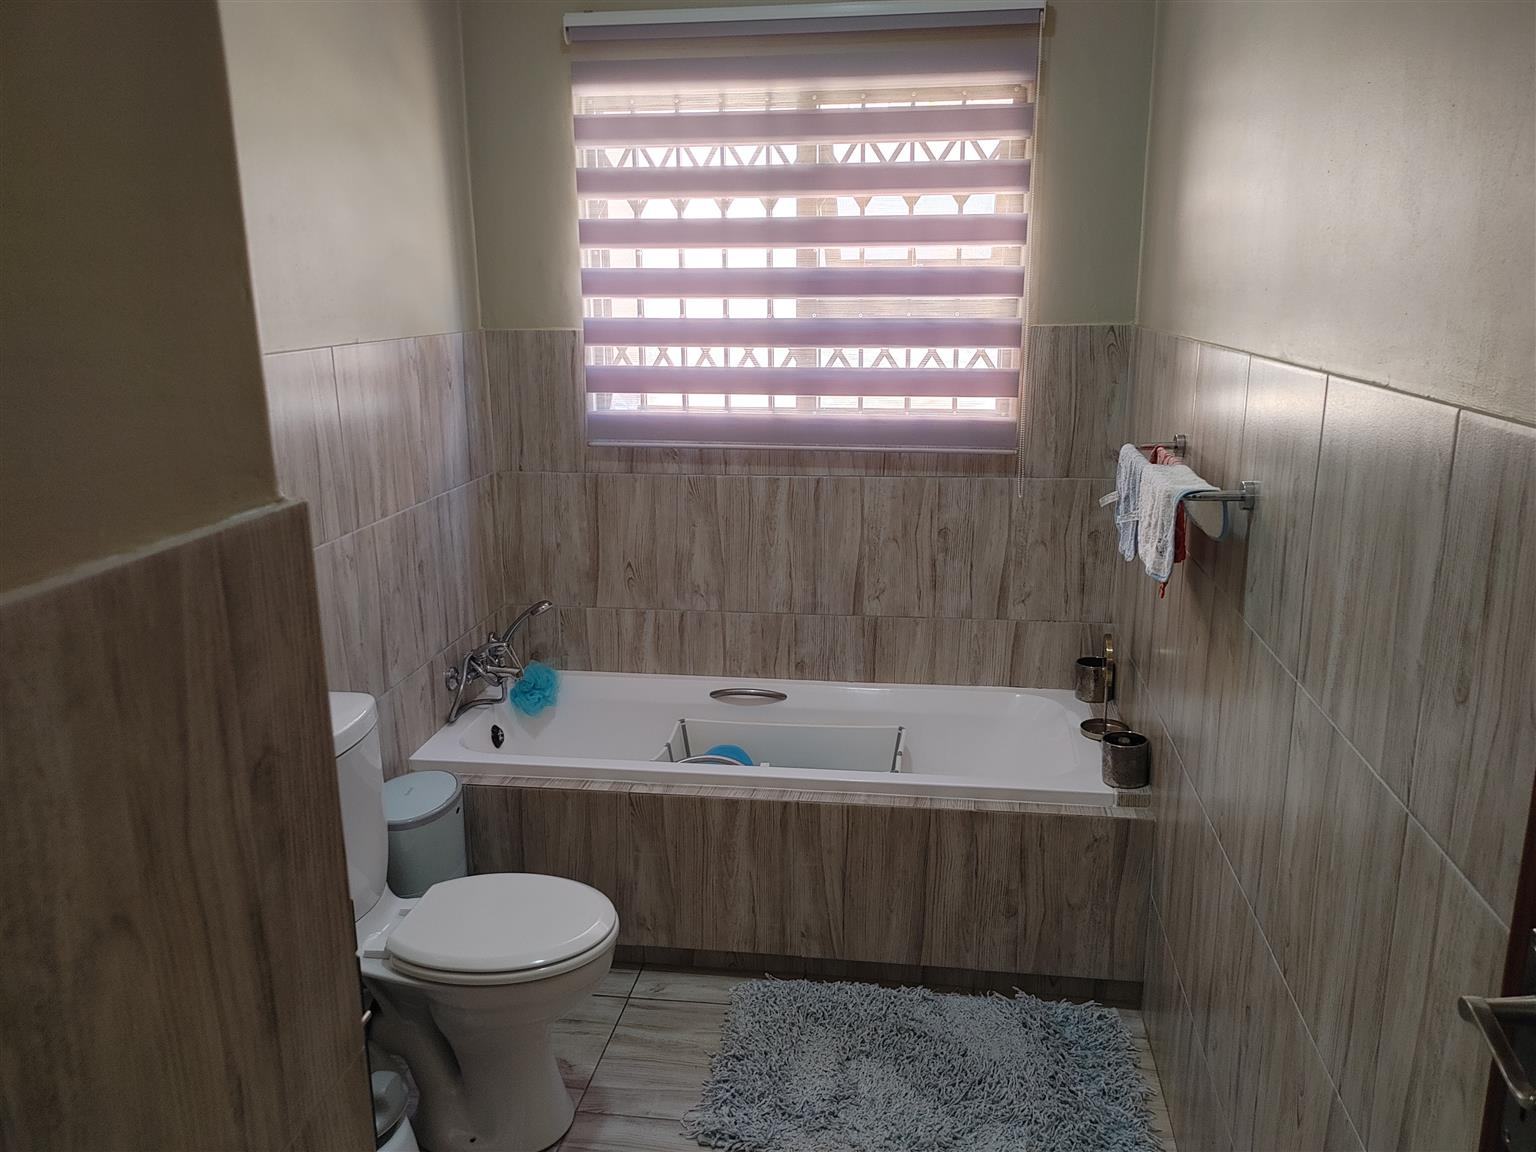 3 bedroom apartment in Midrand